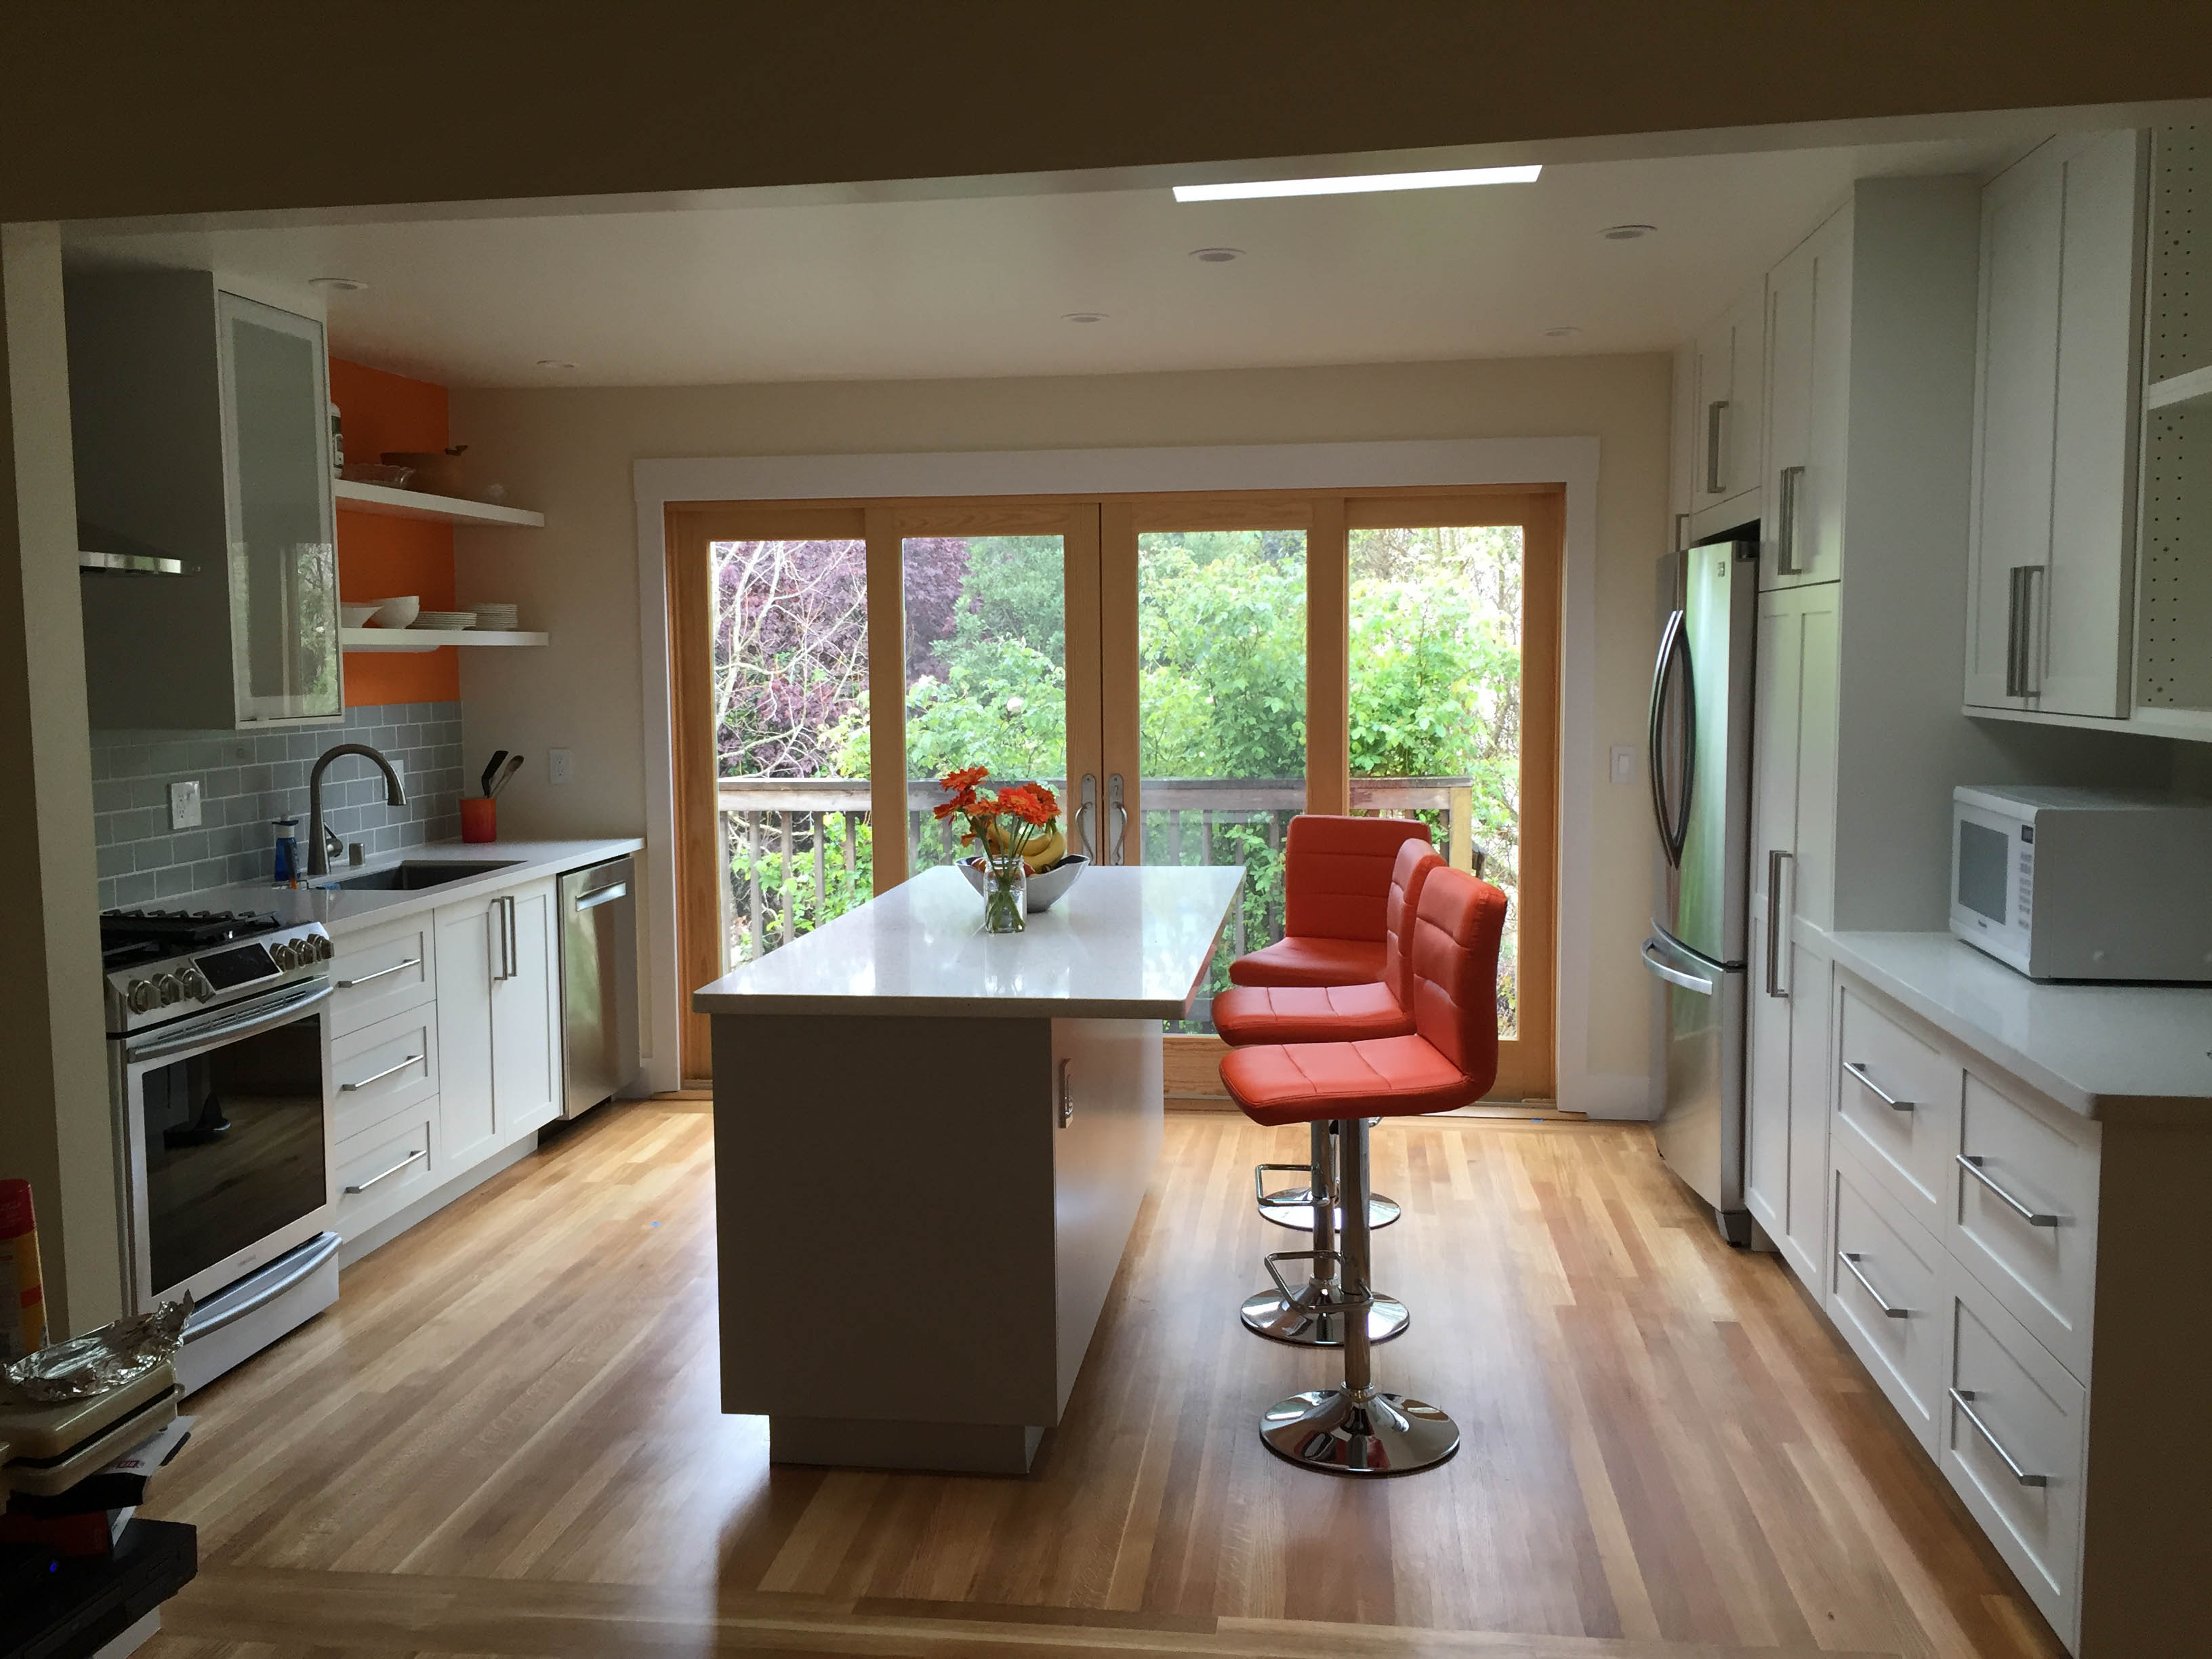 Charmant Orange And Grey Make This IKEA Kitchen Pop